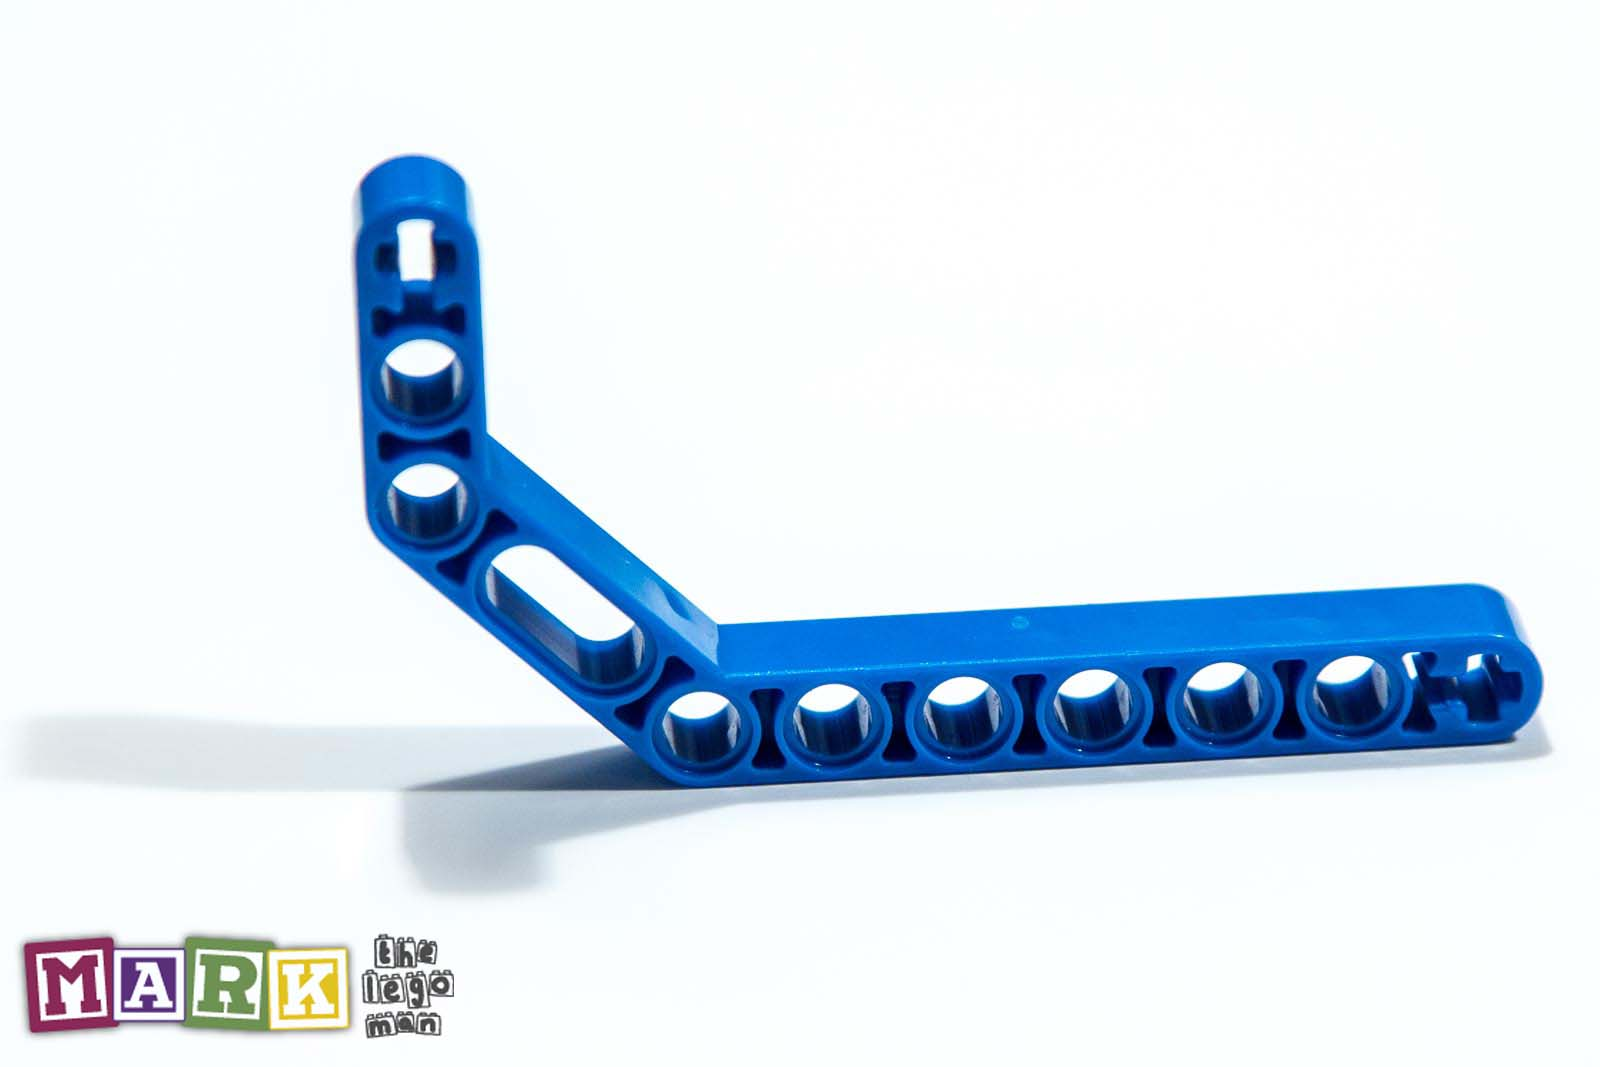 Lego 4112000 32009 1x Blue 3x7 45 Degree Double Angular Beam